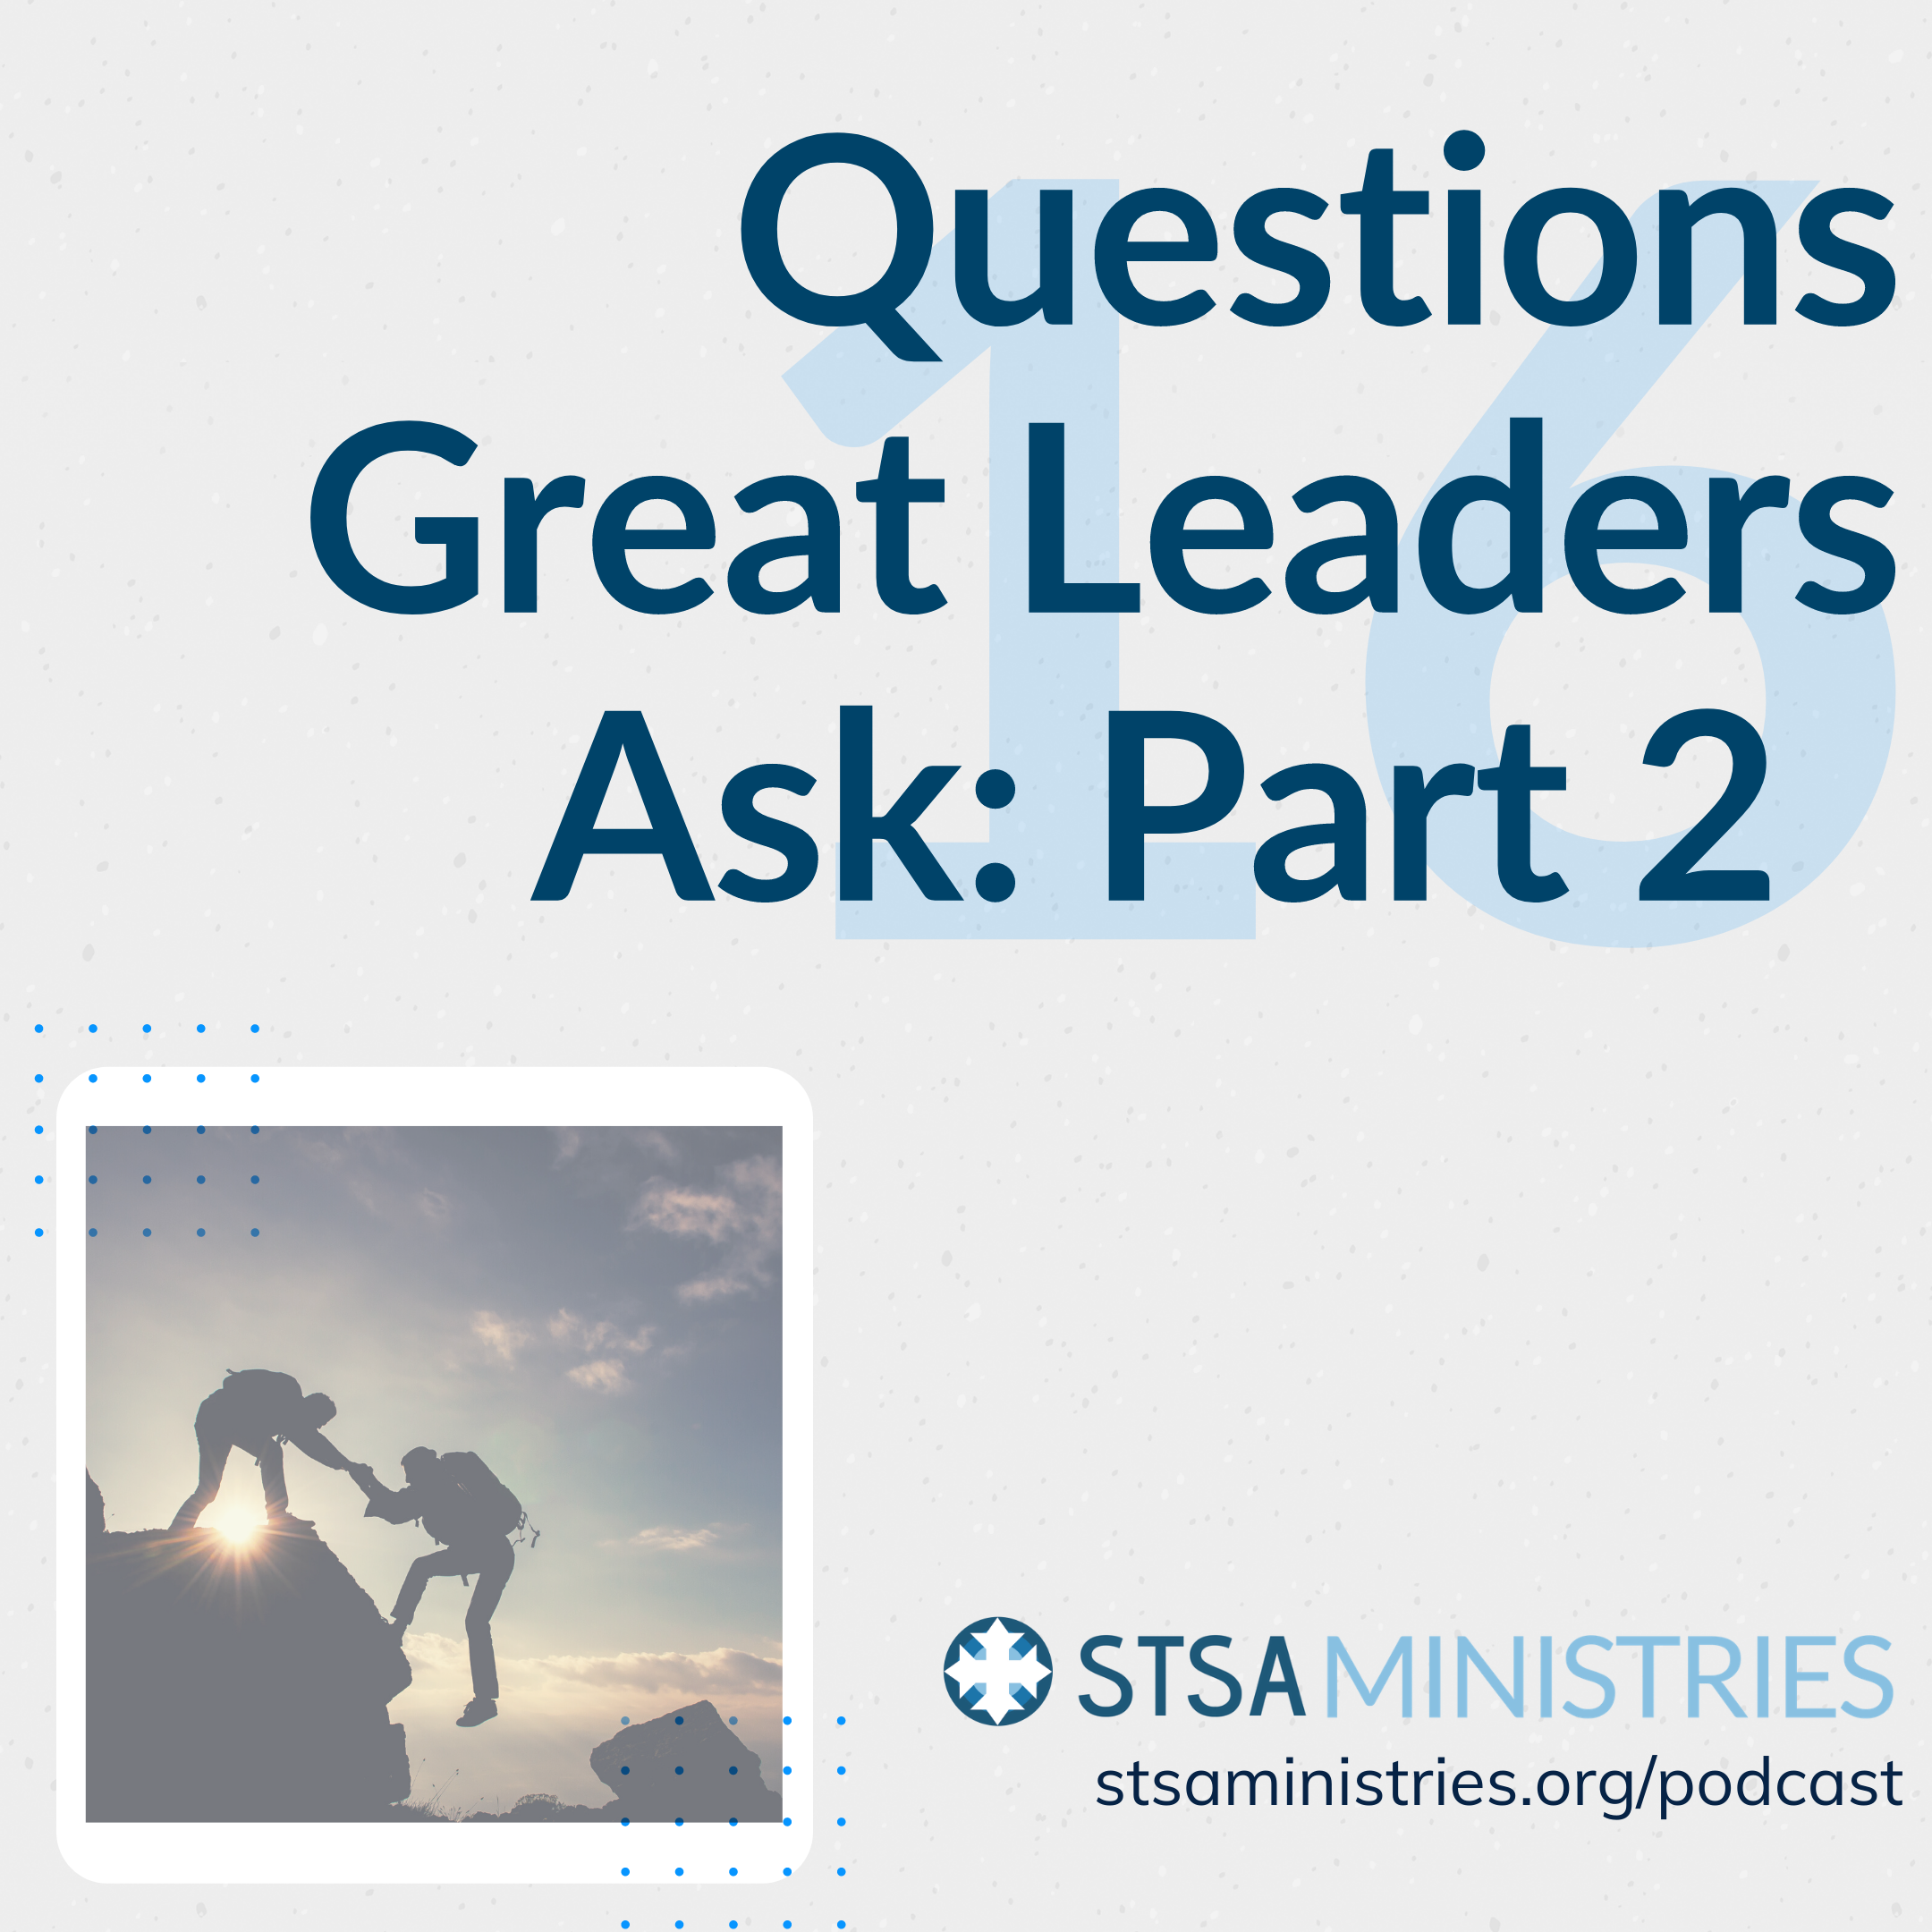 Questions Great Leaders Ask - Part 2